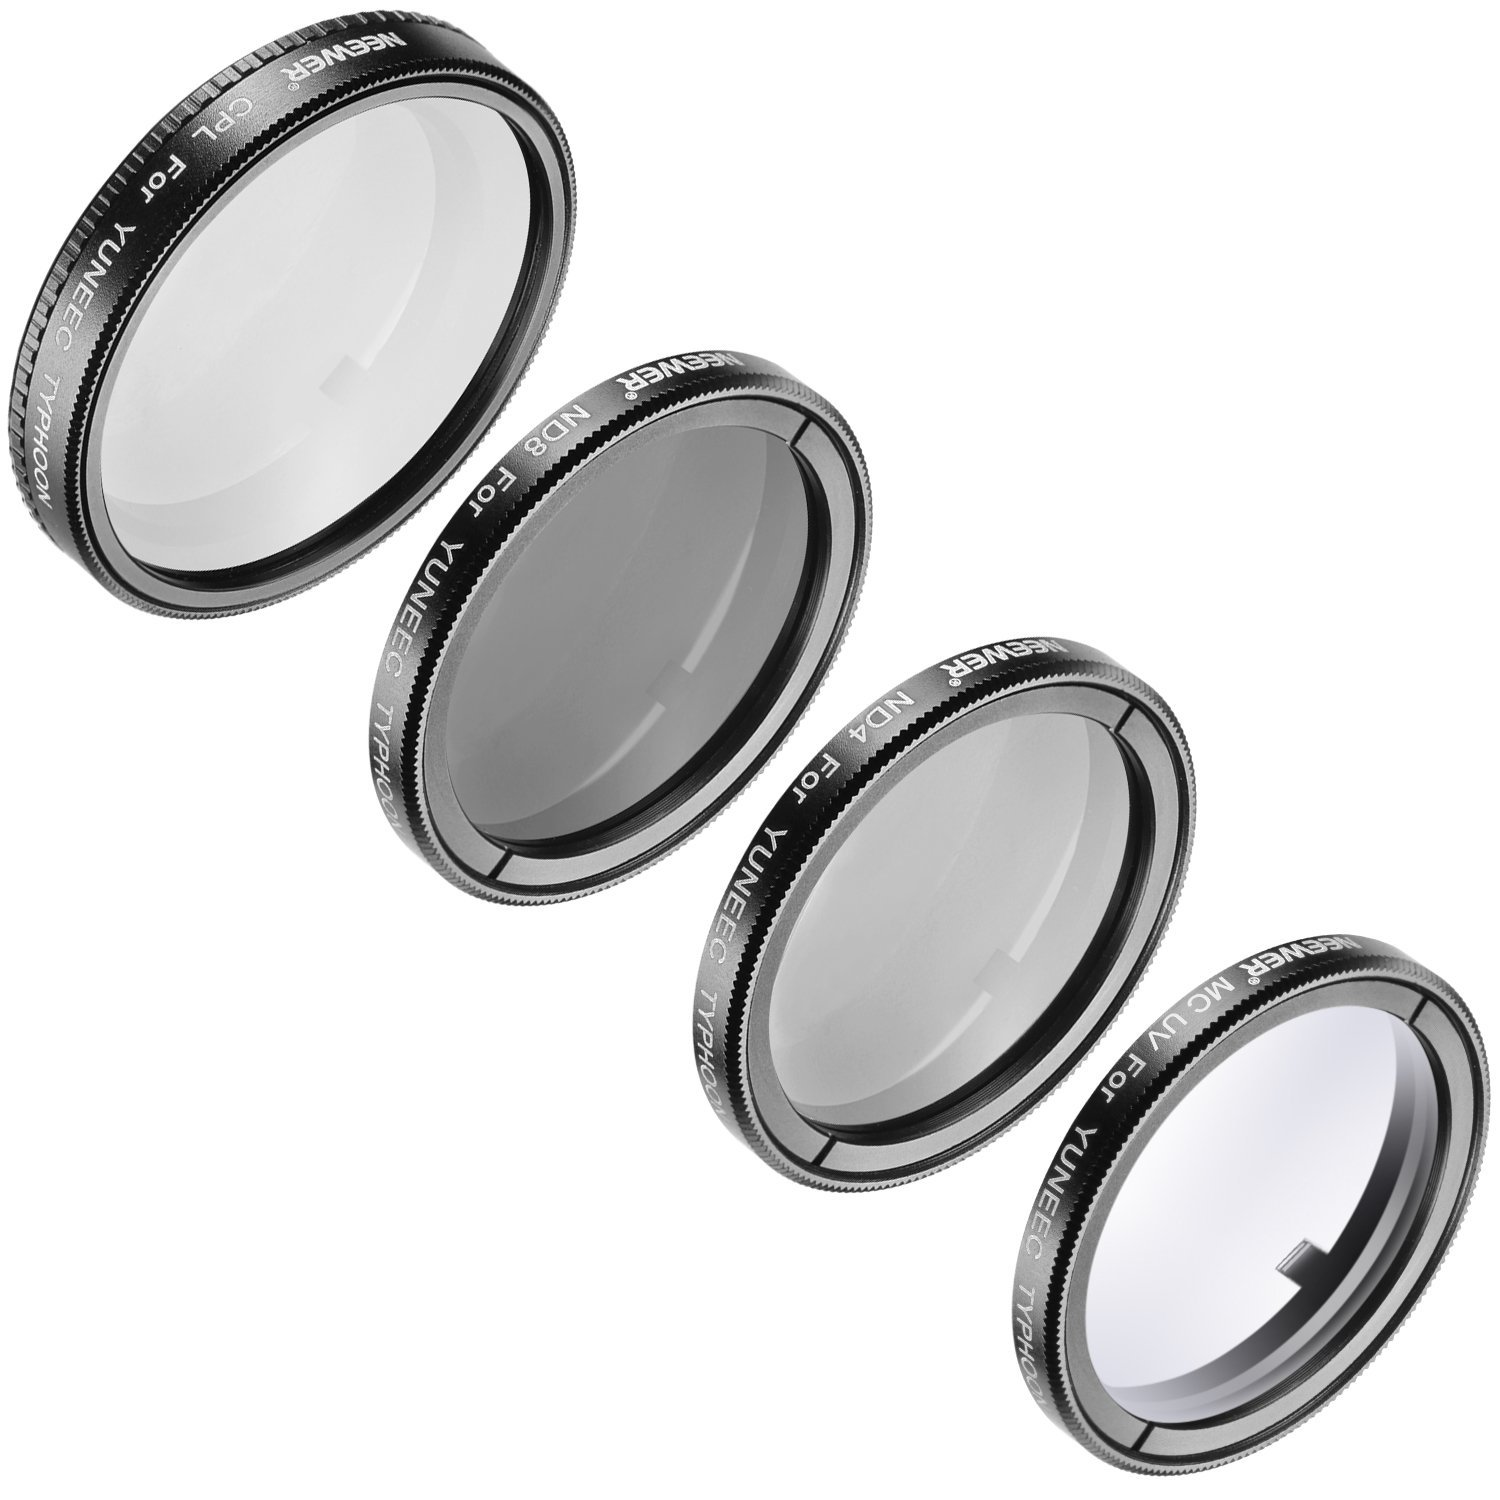 Neewer 4 Pieces Multi-coated Protection Lens Filter Kit for Yuneec Quadcopter Typhoon Q500 4K, Typhoon H, Includes: Ultraviolet Filter, Circular Polarizer Filter, Neutral Density ND 4 / ND 8 Filter by Neewer